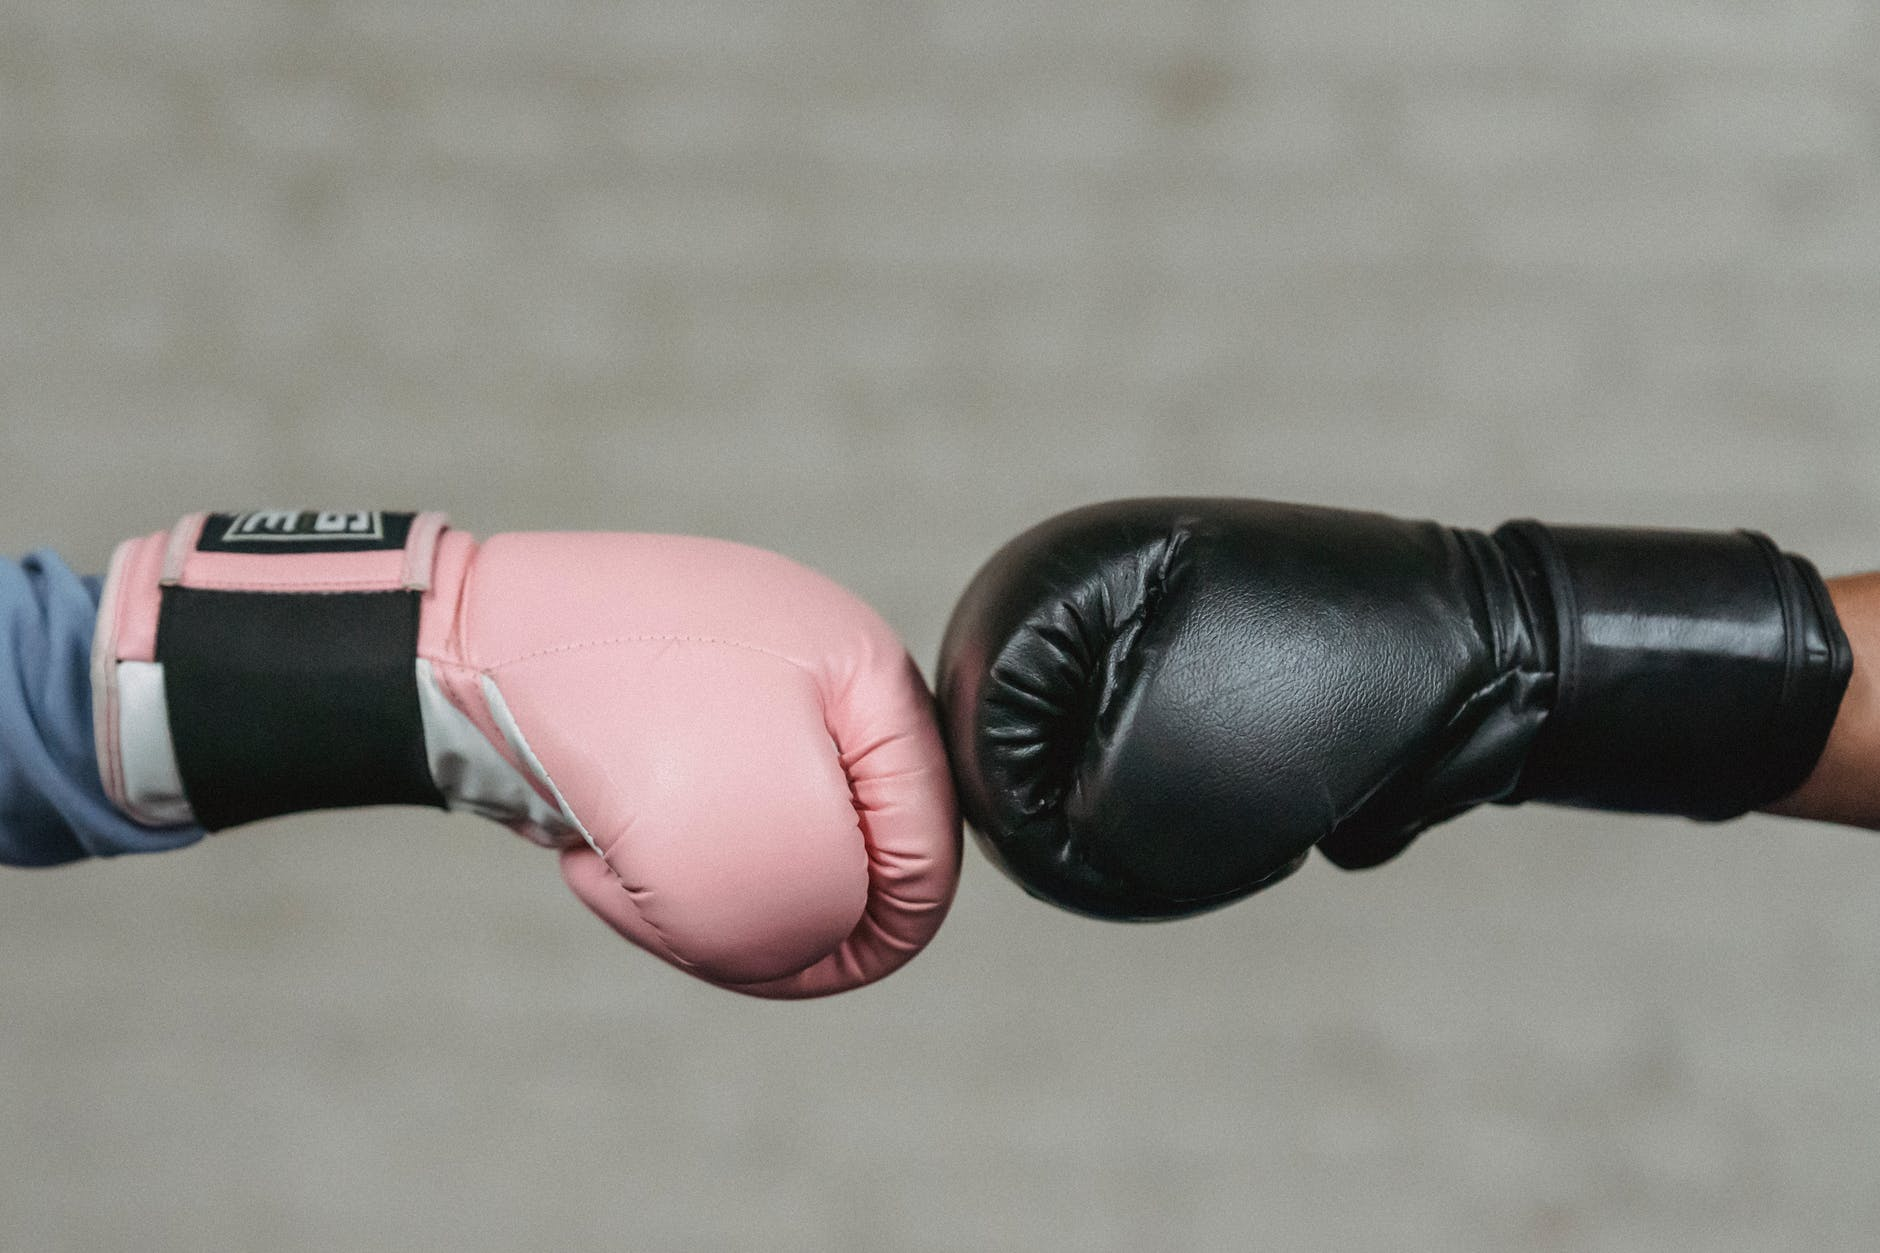 anonymous fighters bumping fists before boxing